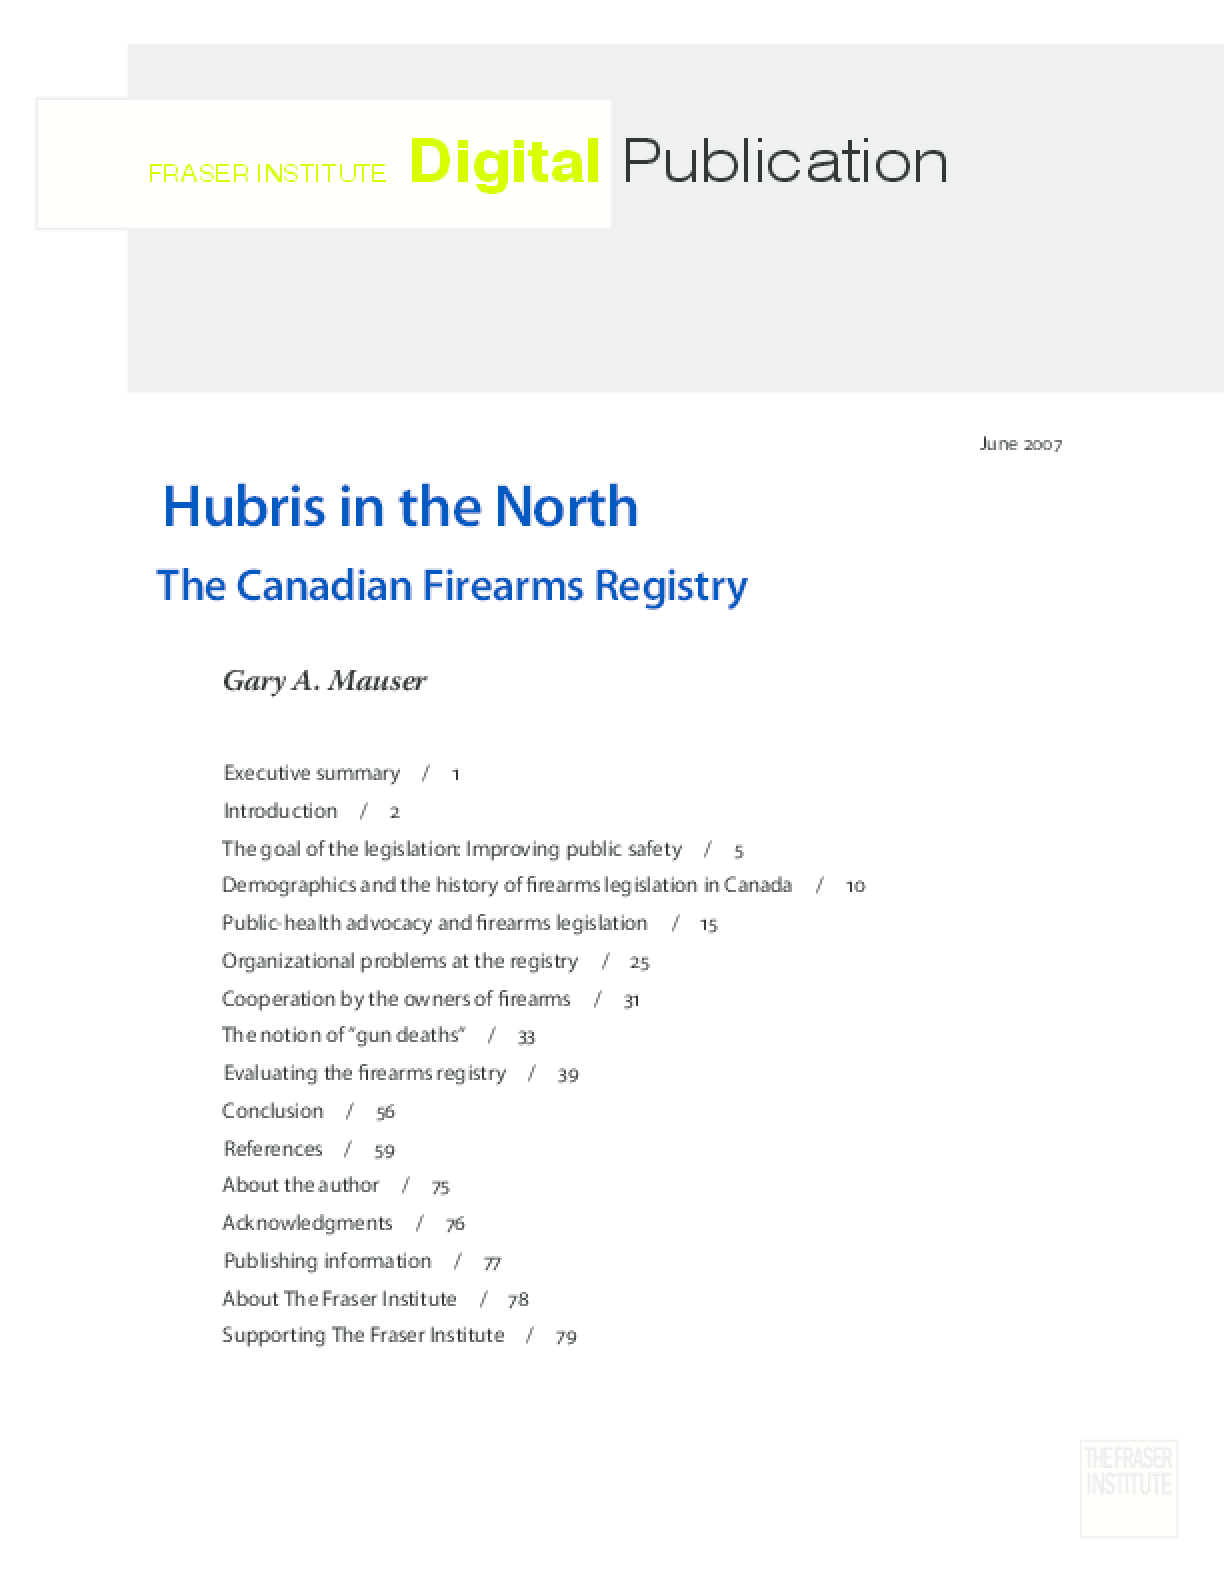 Hubris in the North: the Canadian Firearms Registry